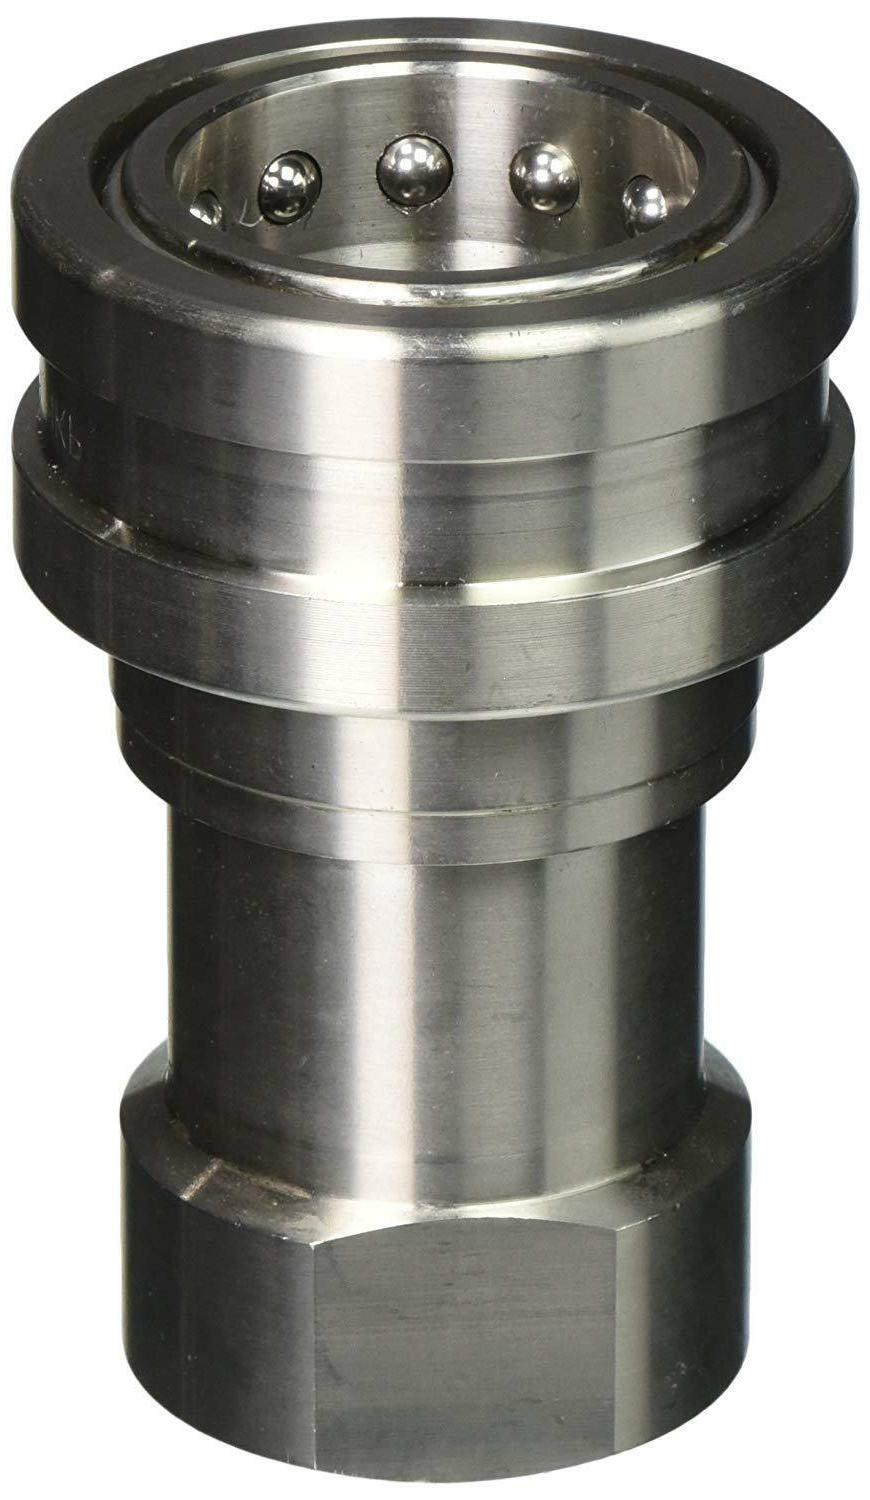 ll8hp36 quick connect coupling 1 npt stainless